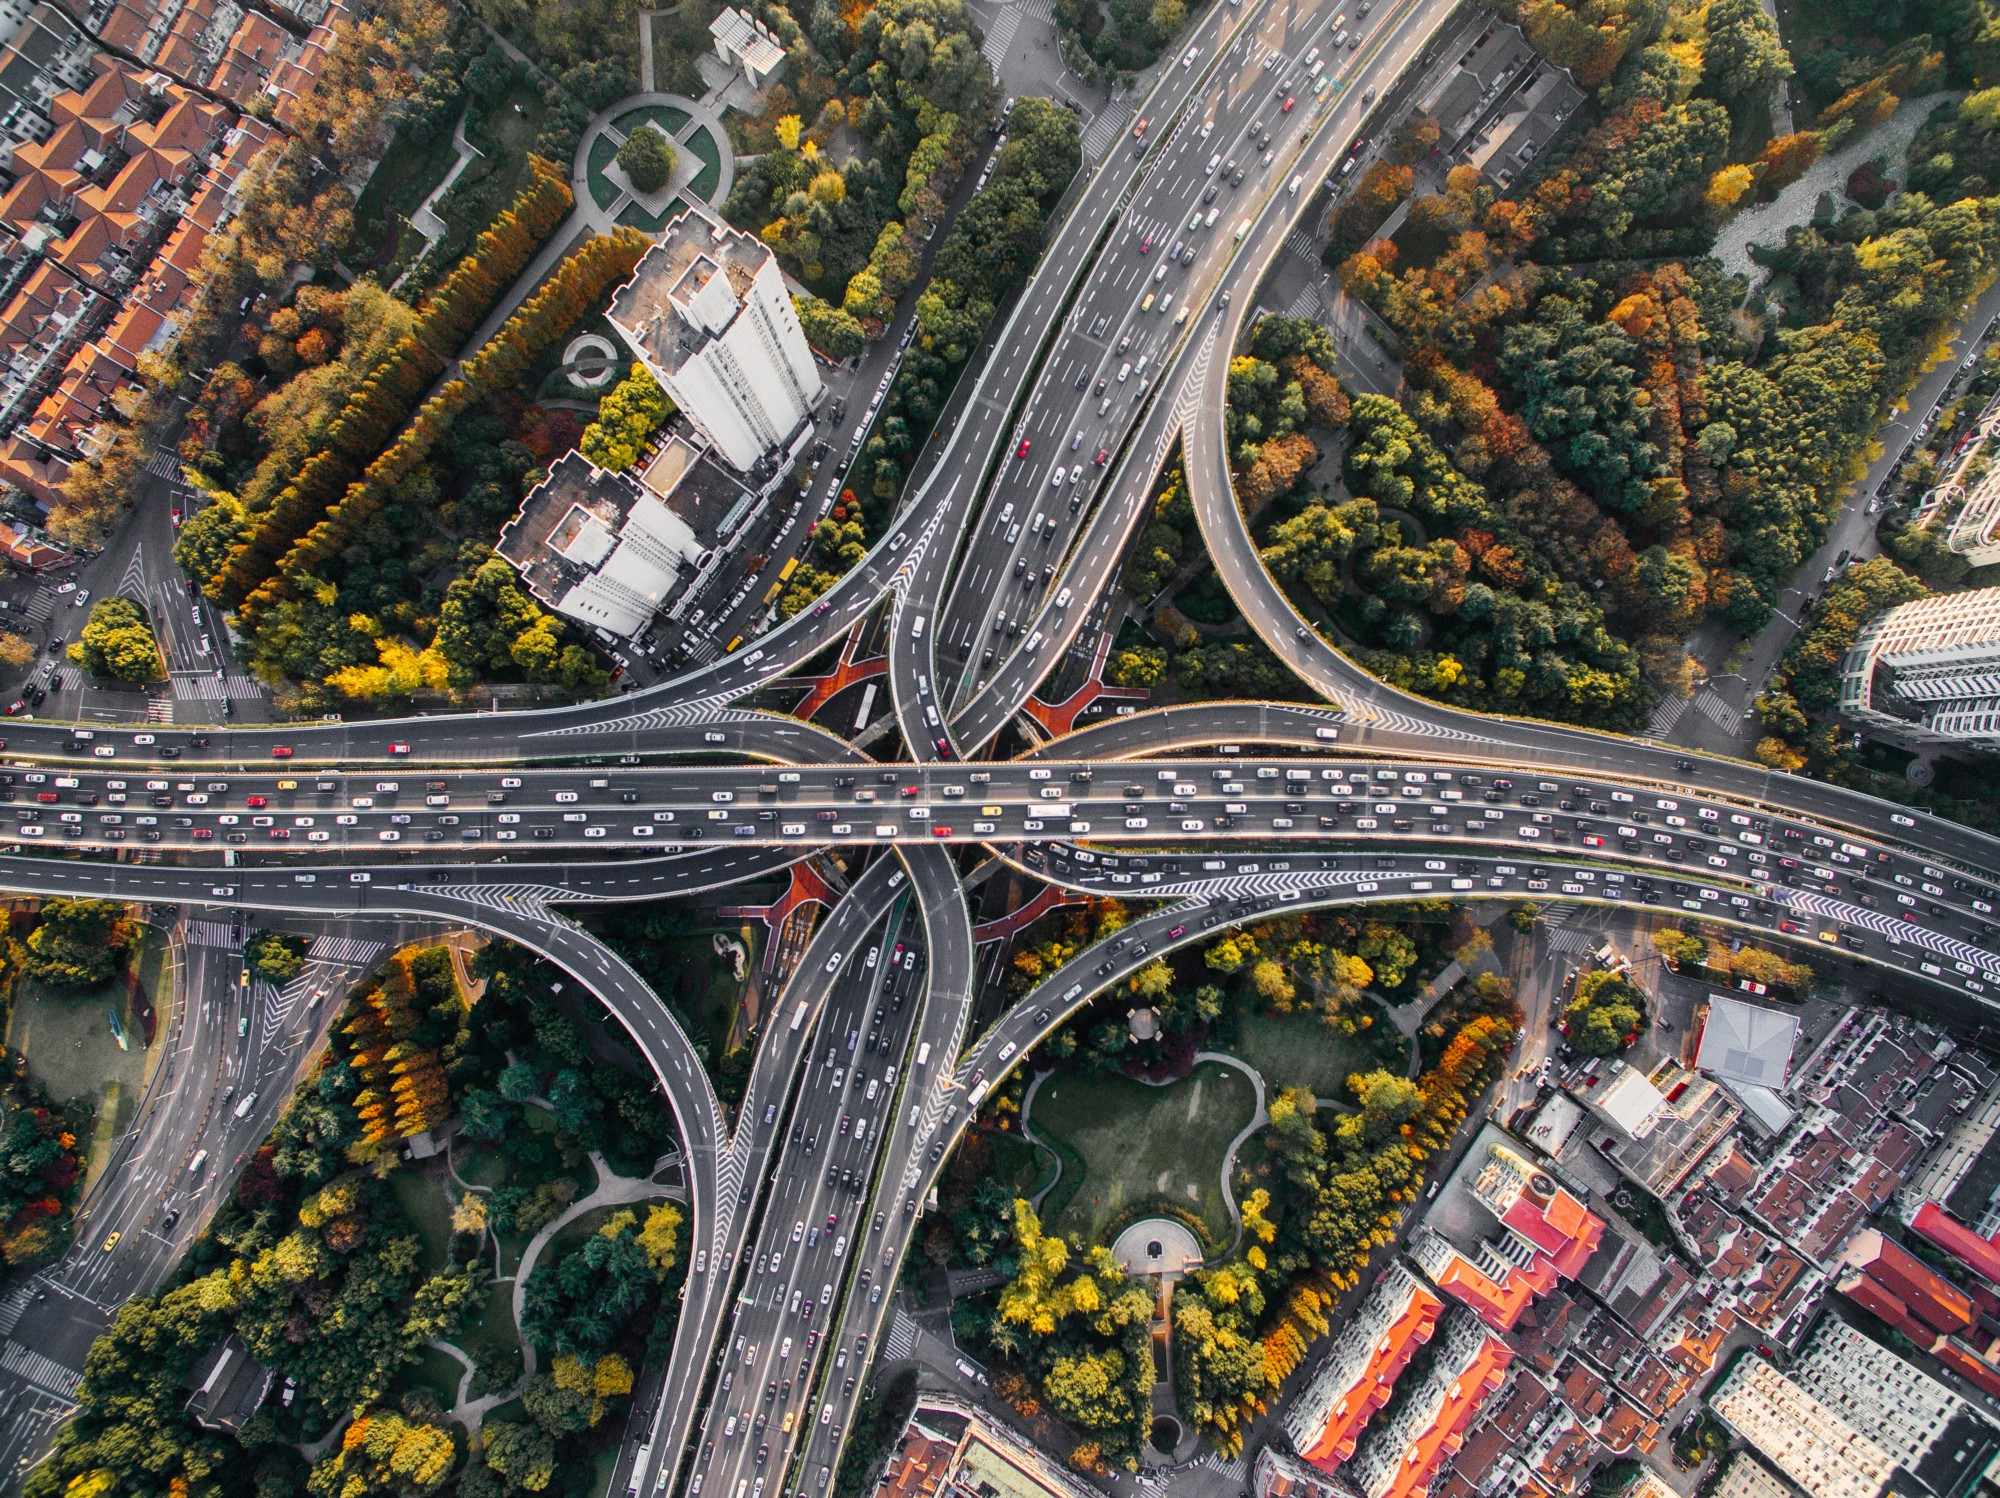 Aerial photography of concrete roads by  Denys Nevozhai  on Unsplash